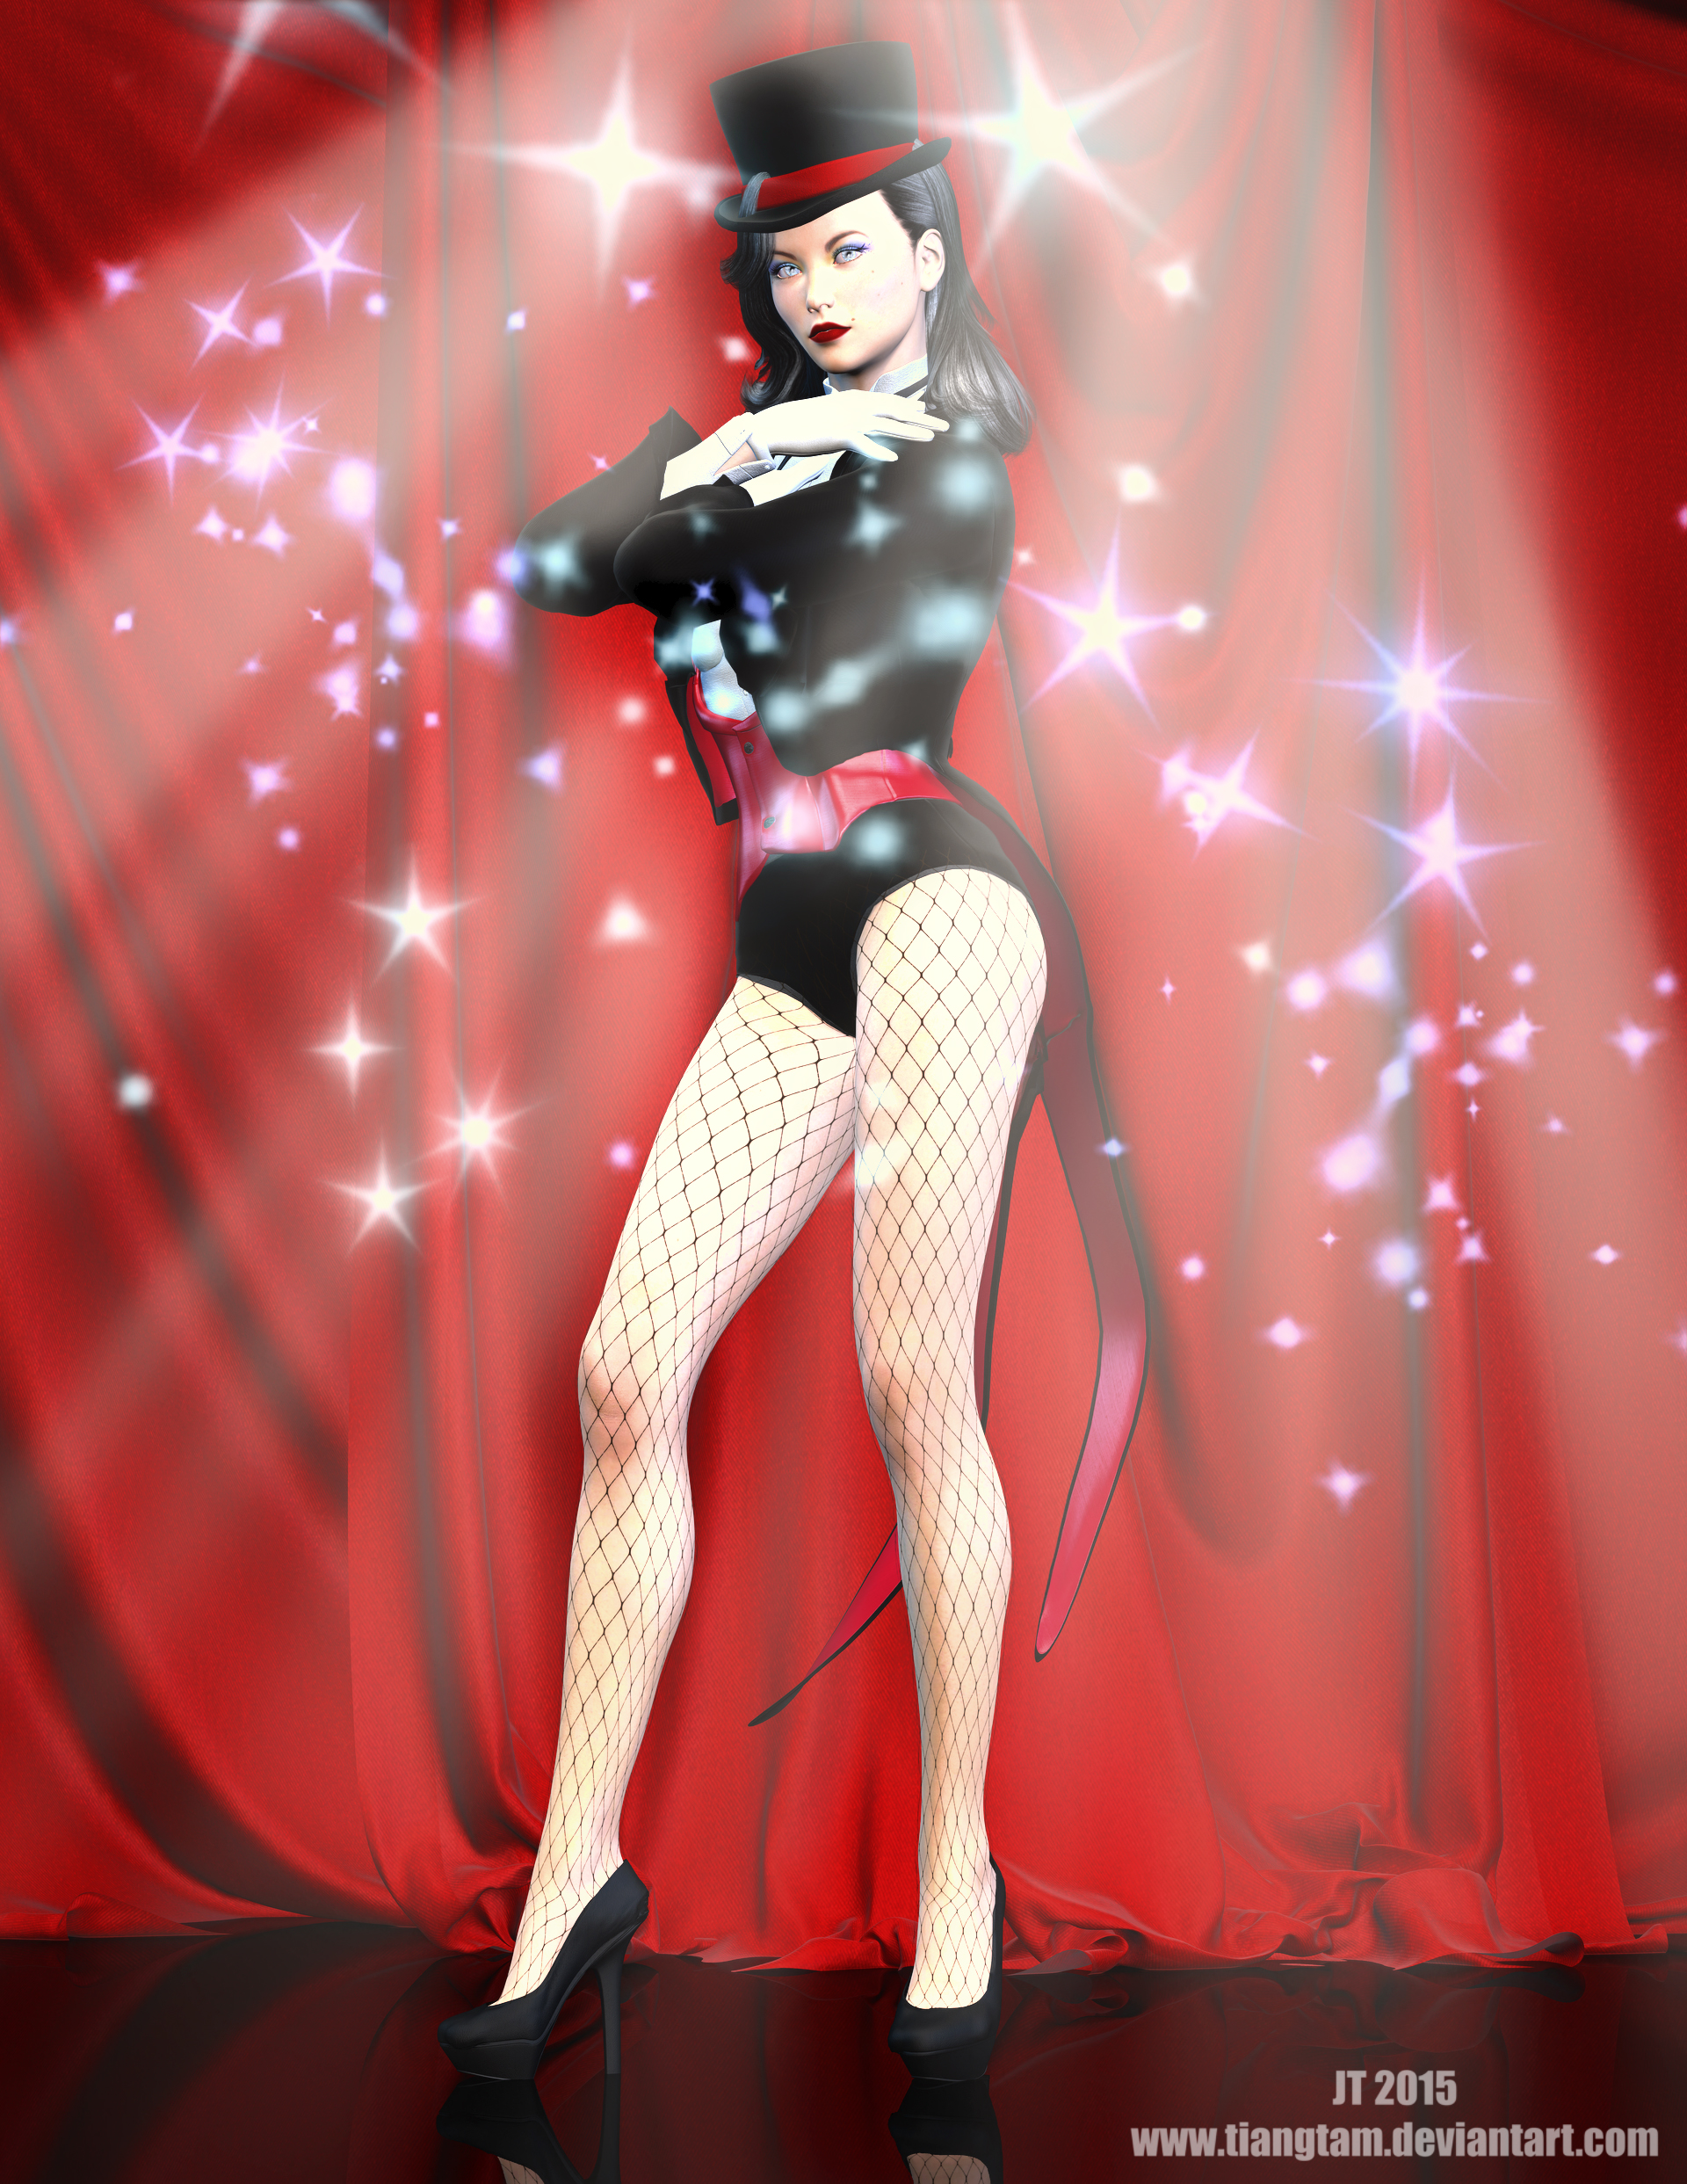 zatanna dc wallpaper - photo #23